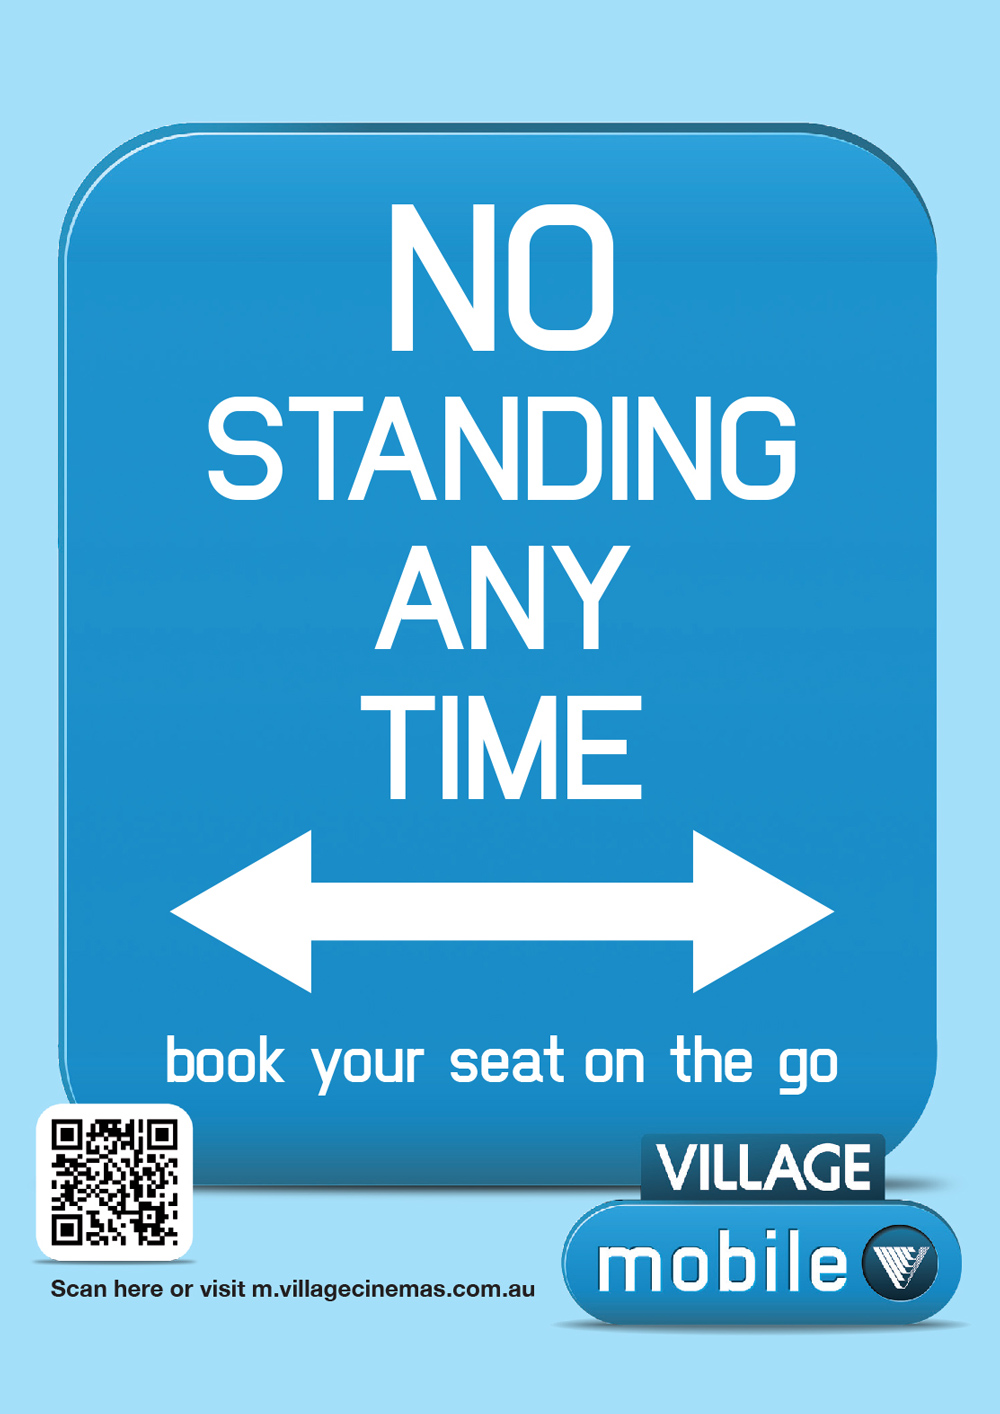 case_study_village_mobile_tix_3_1000px